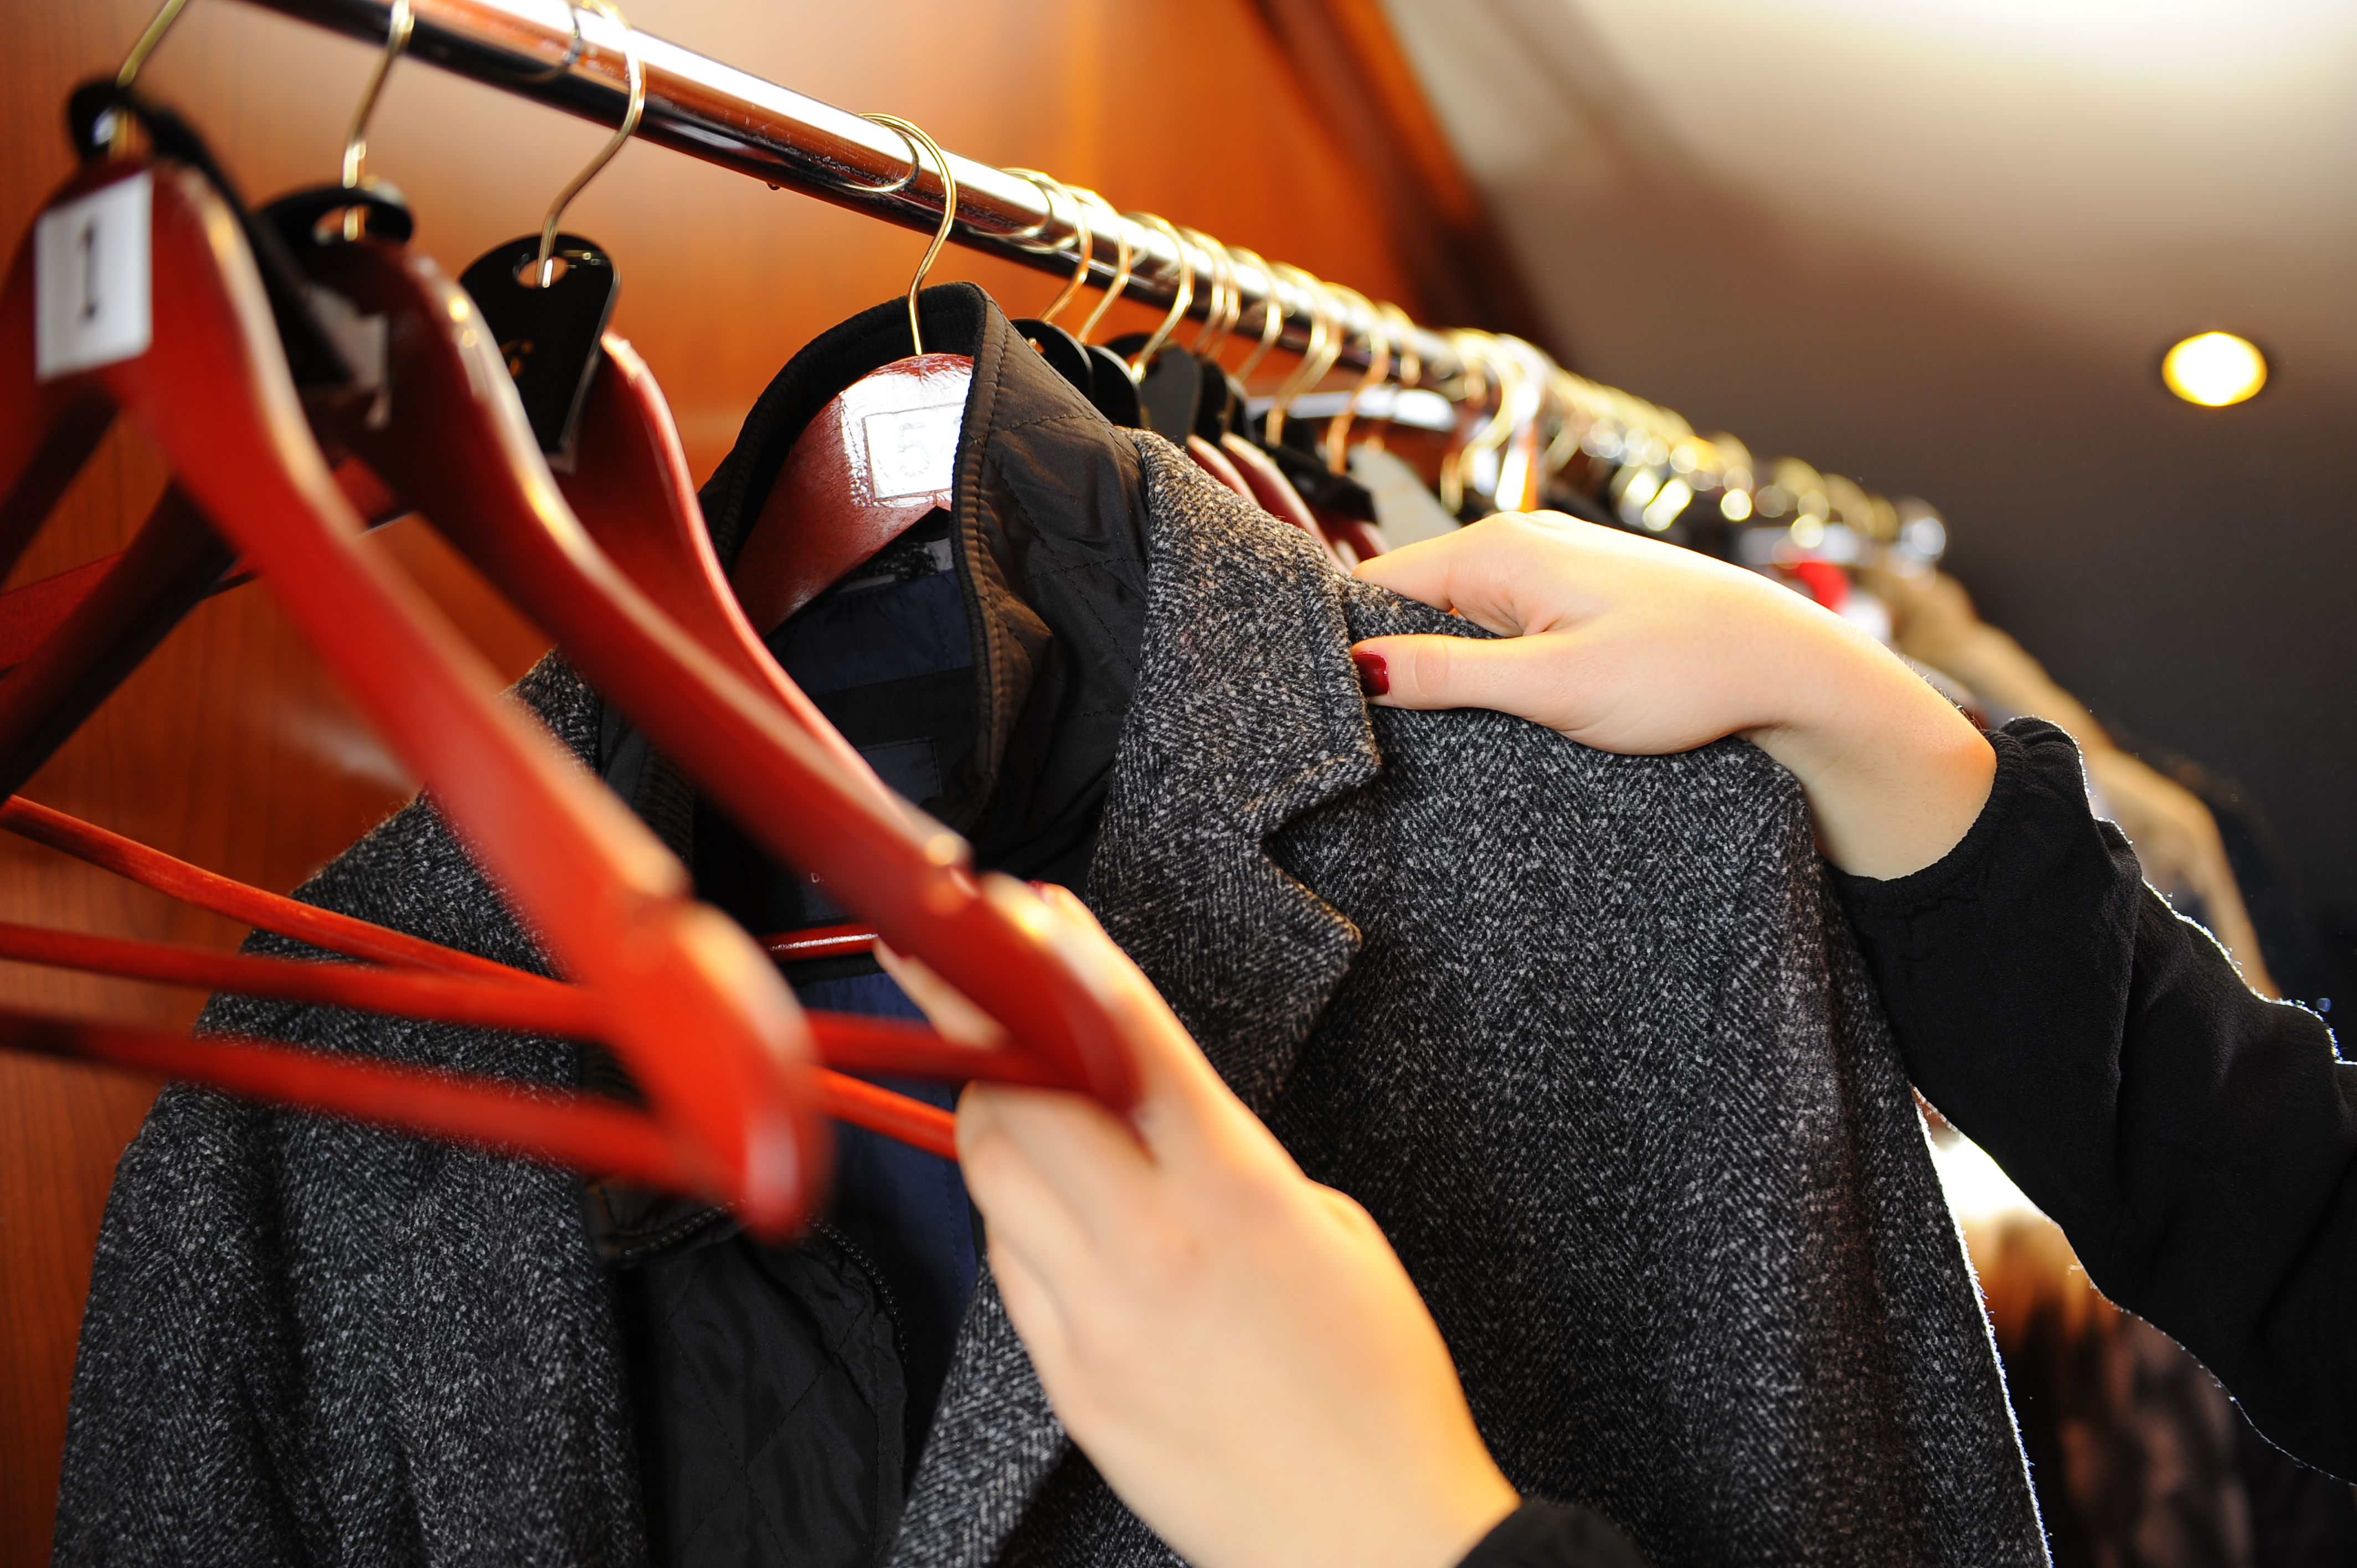 woman choosing what to wear to court